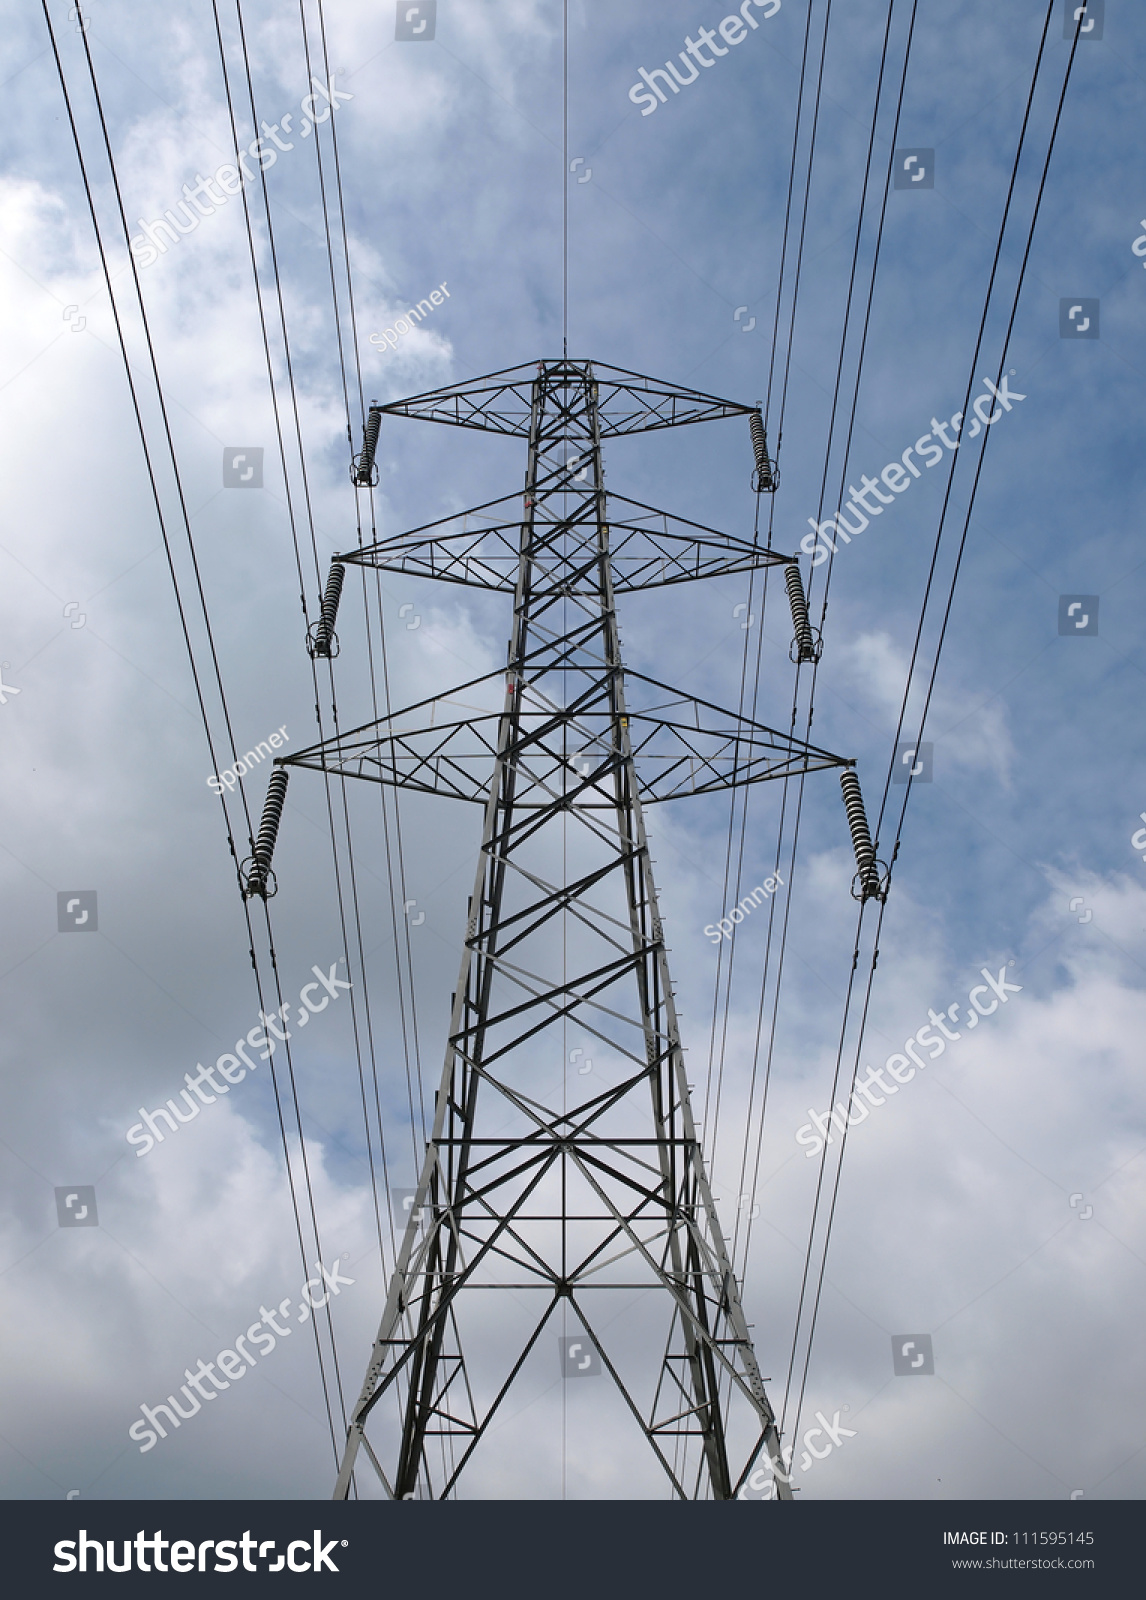 Electricity Pylon And Wires Forming Part Of The National Grid Ez Electrical Id 111595145